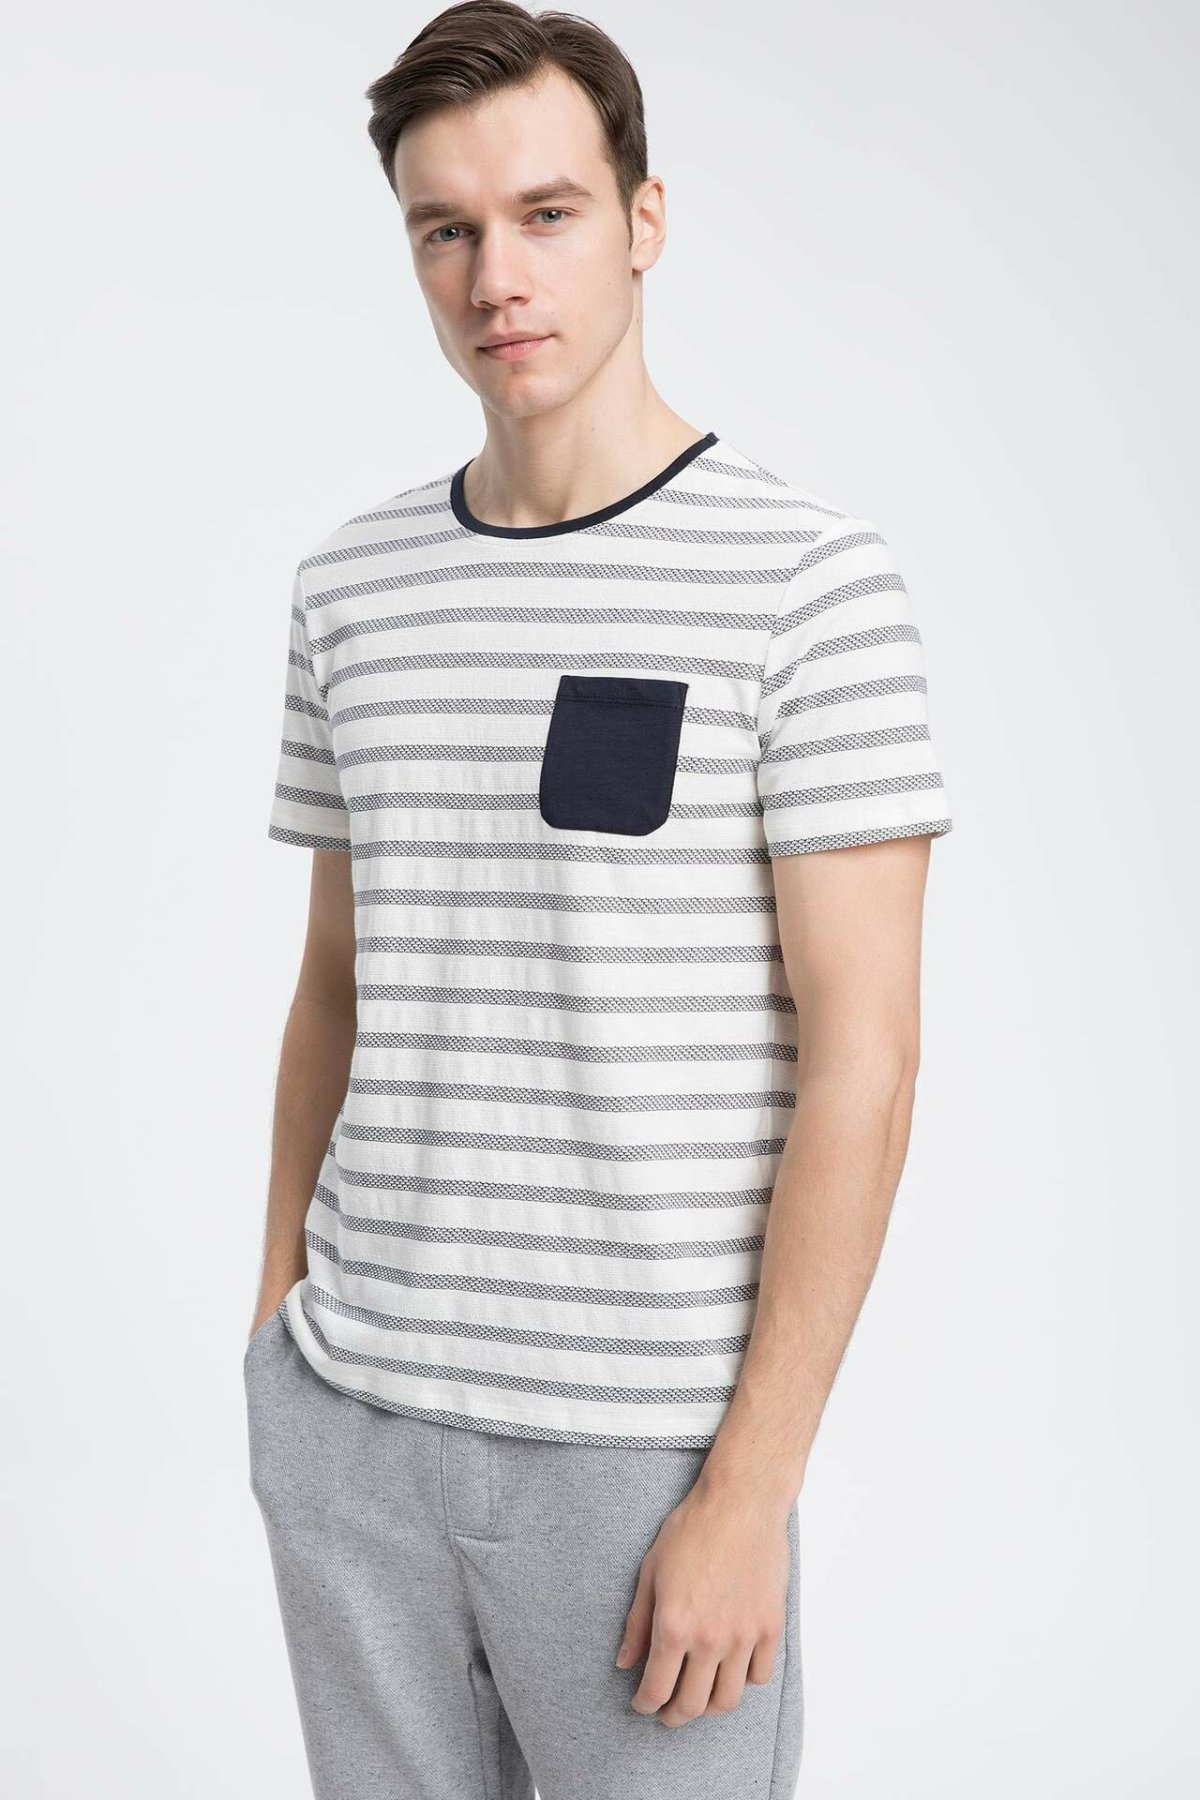 DeFacto Man Casual Striped White Knitted Tops Set Men Pocket Decors T-Shirts Male Top Cloth-K2390AZ19SP